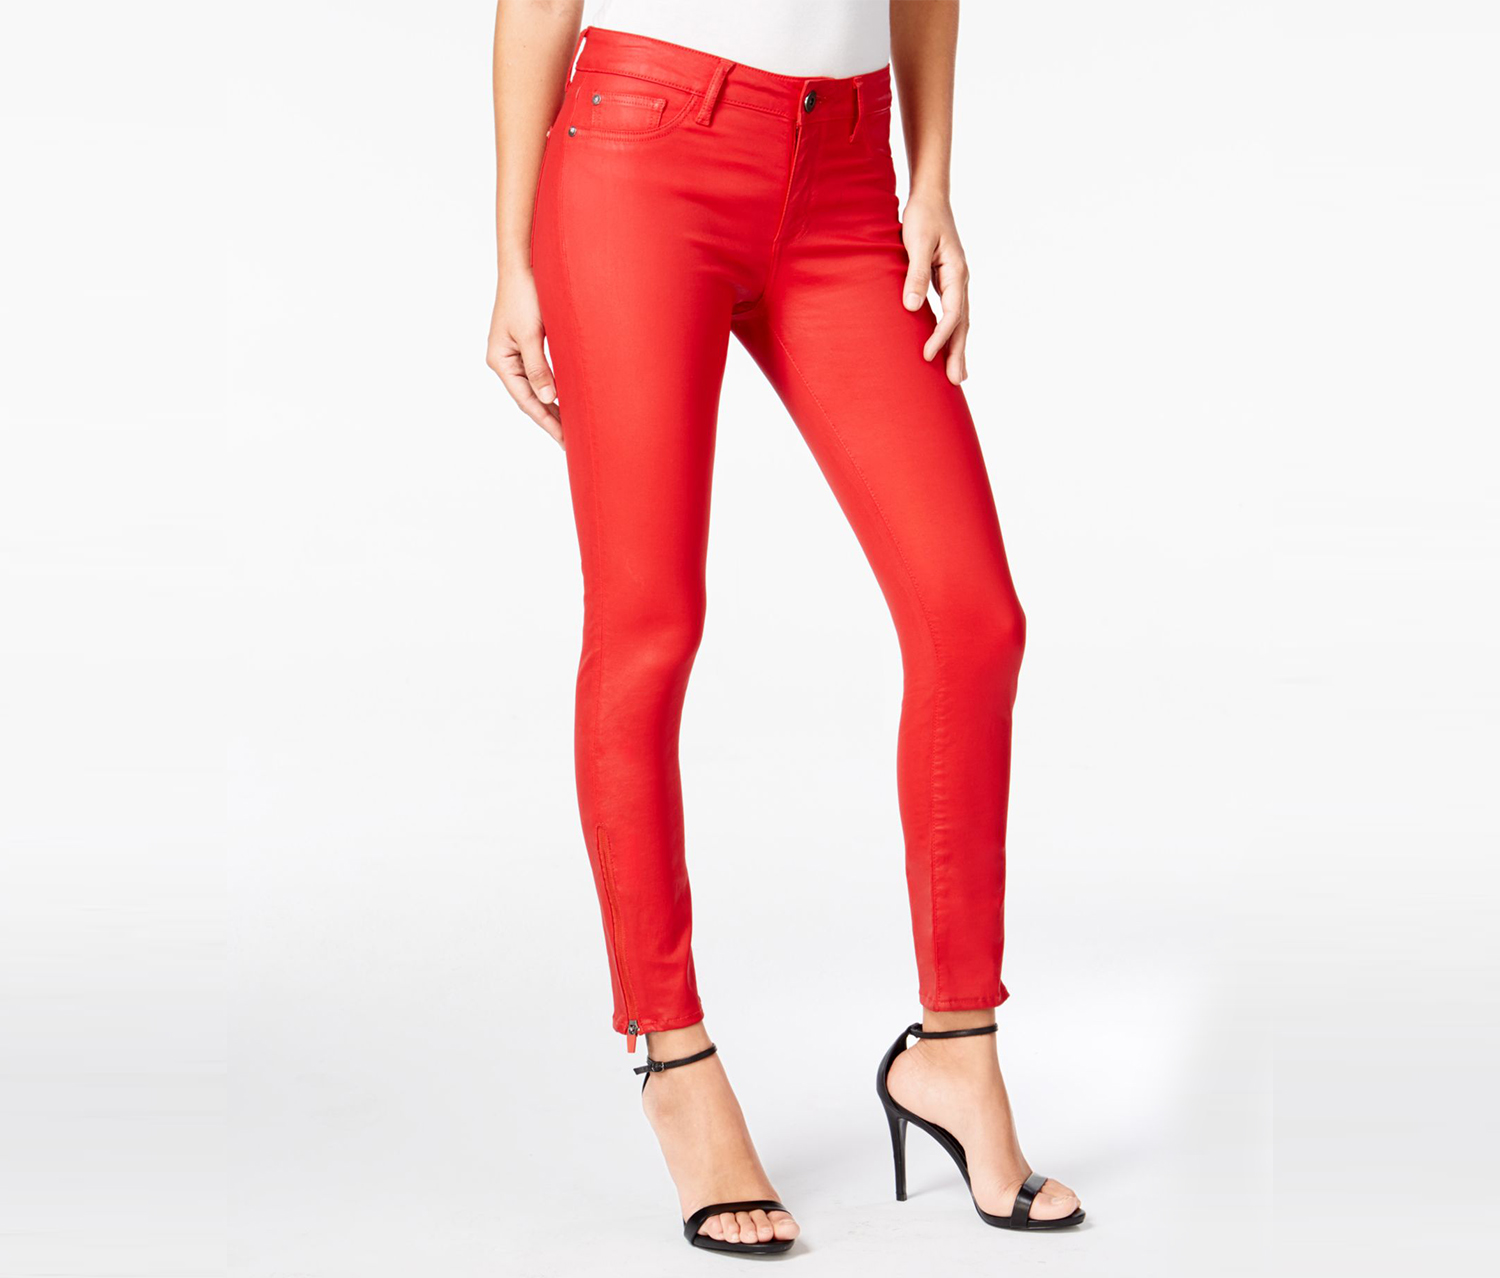 Dl 1961 Margaux Instasculpt Coated Fuego Wash Skinny Jeans, Red